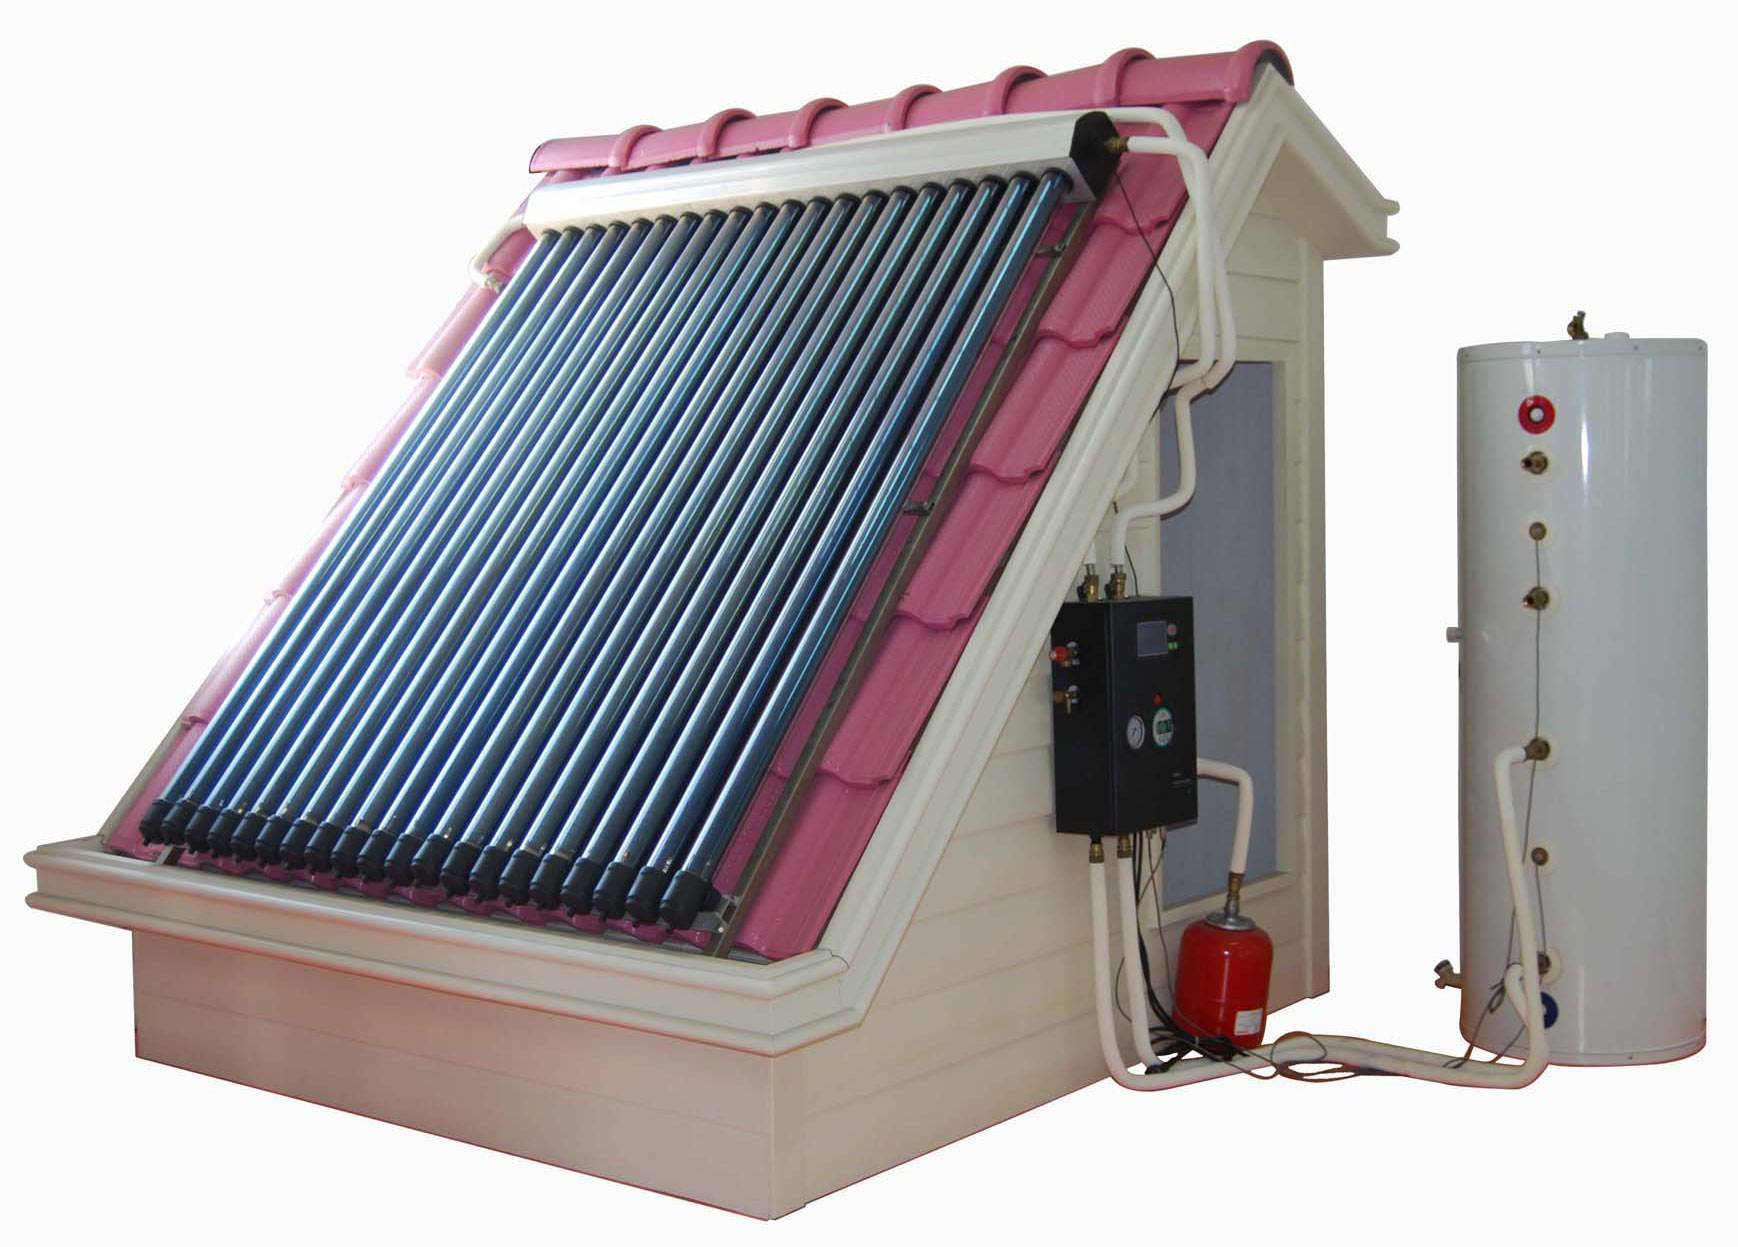 Split high pressure solar water heating system